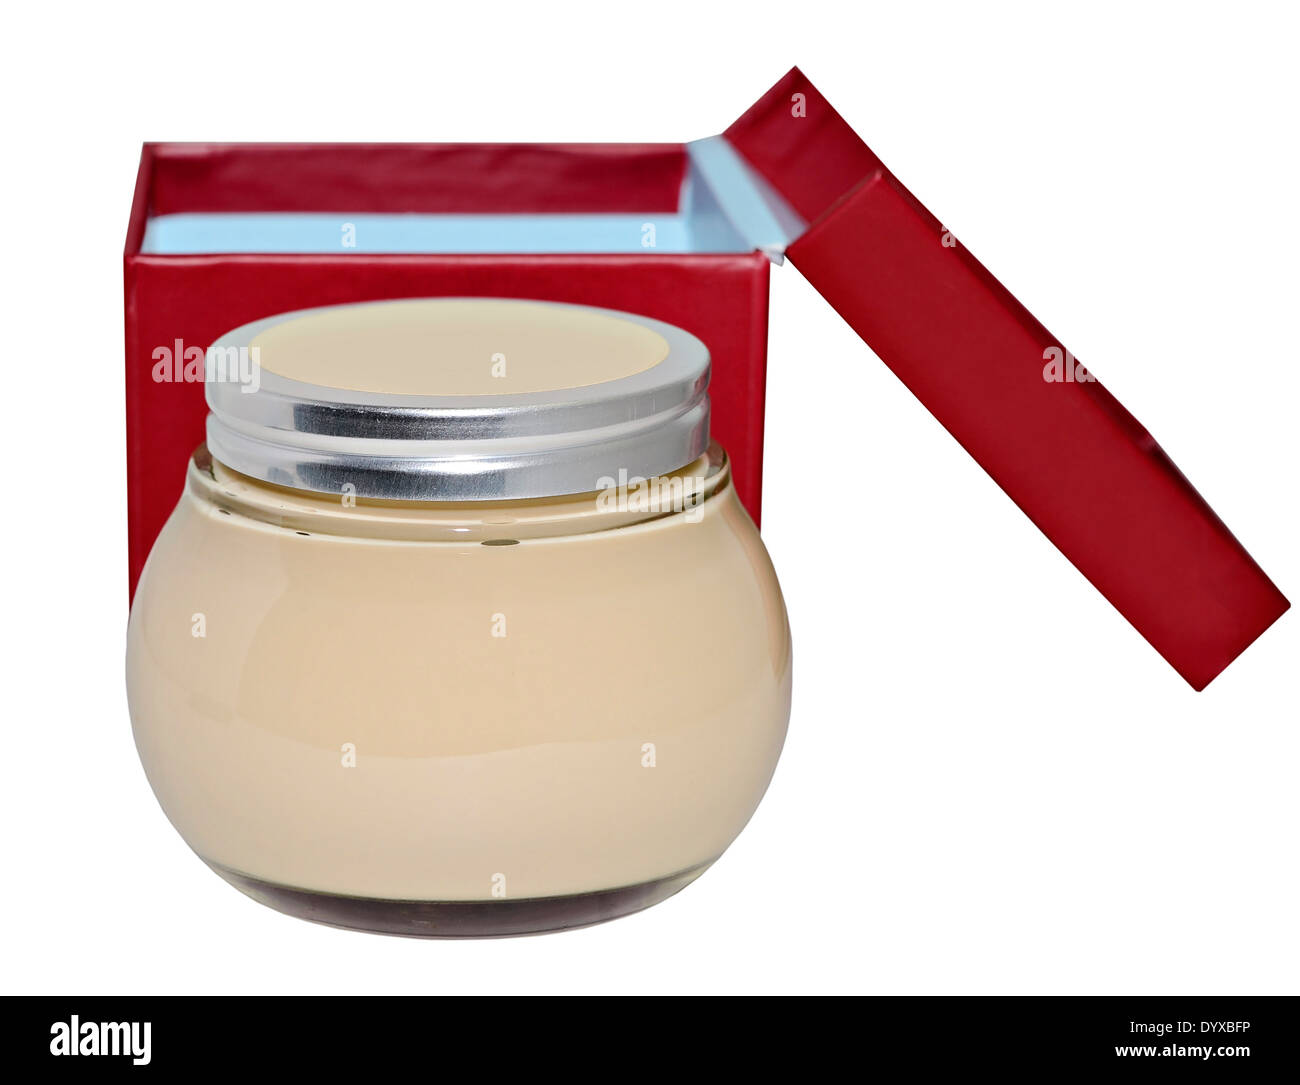 A jar of lotion or cream with red and blue box on a white background. - Stock Image